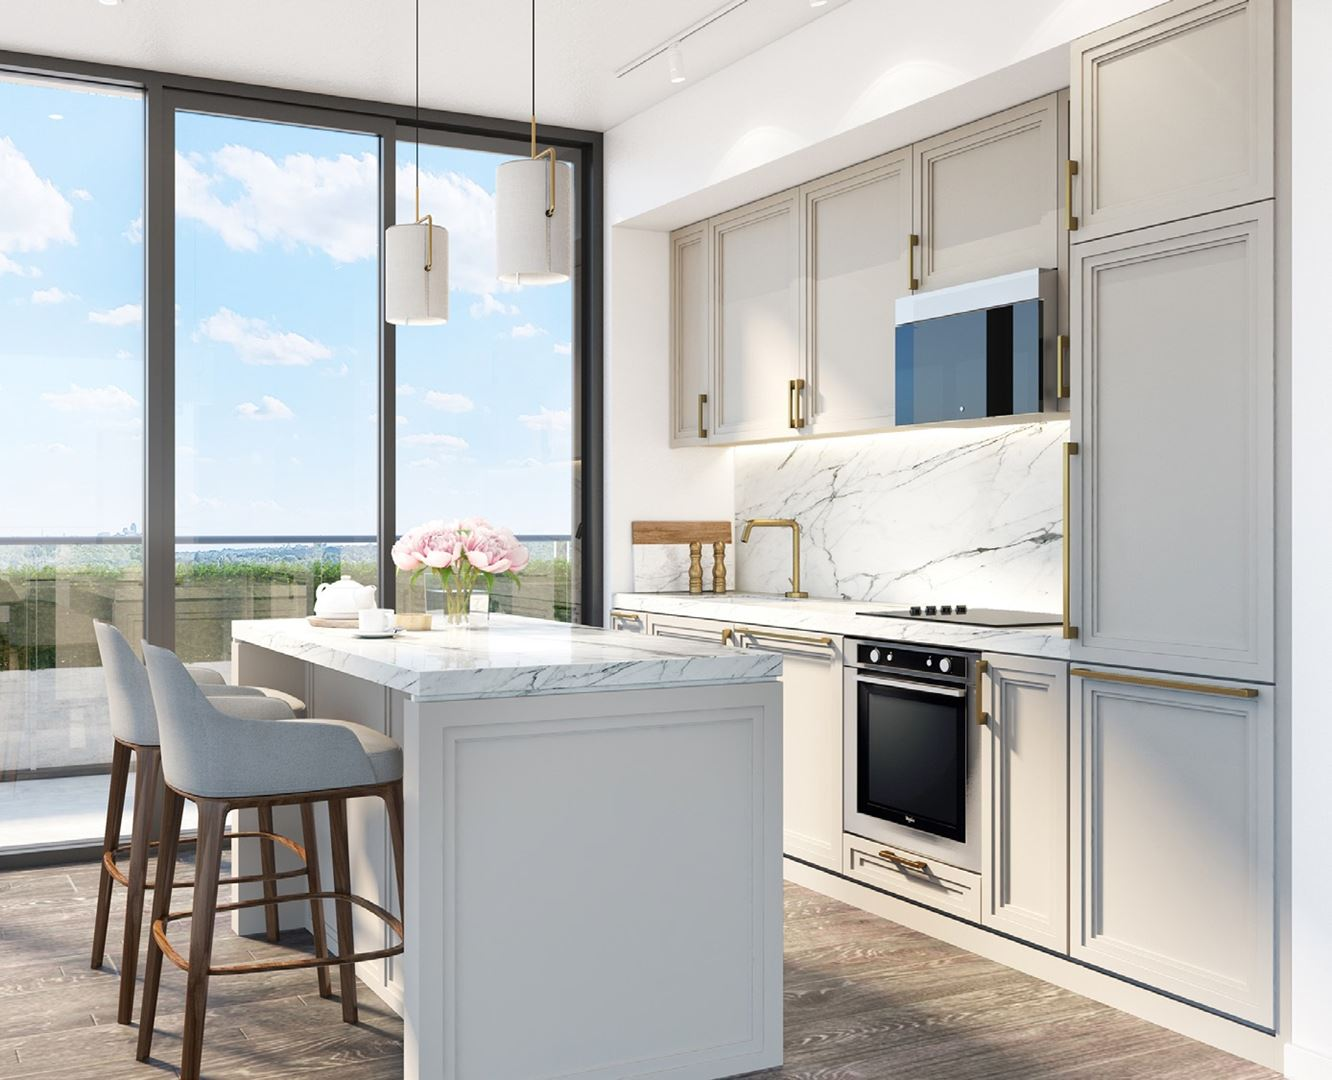 Rendering of 181 East Condos suite interior kitchen.